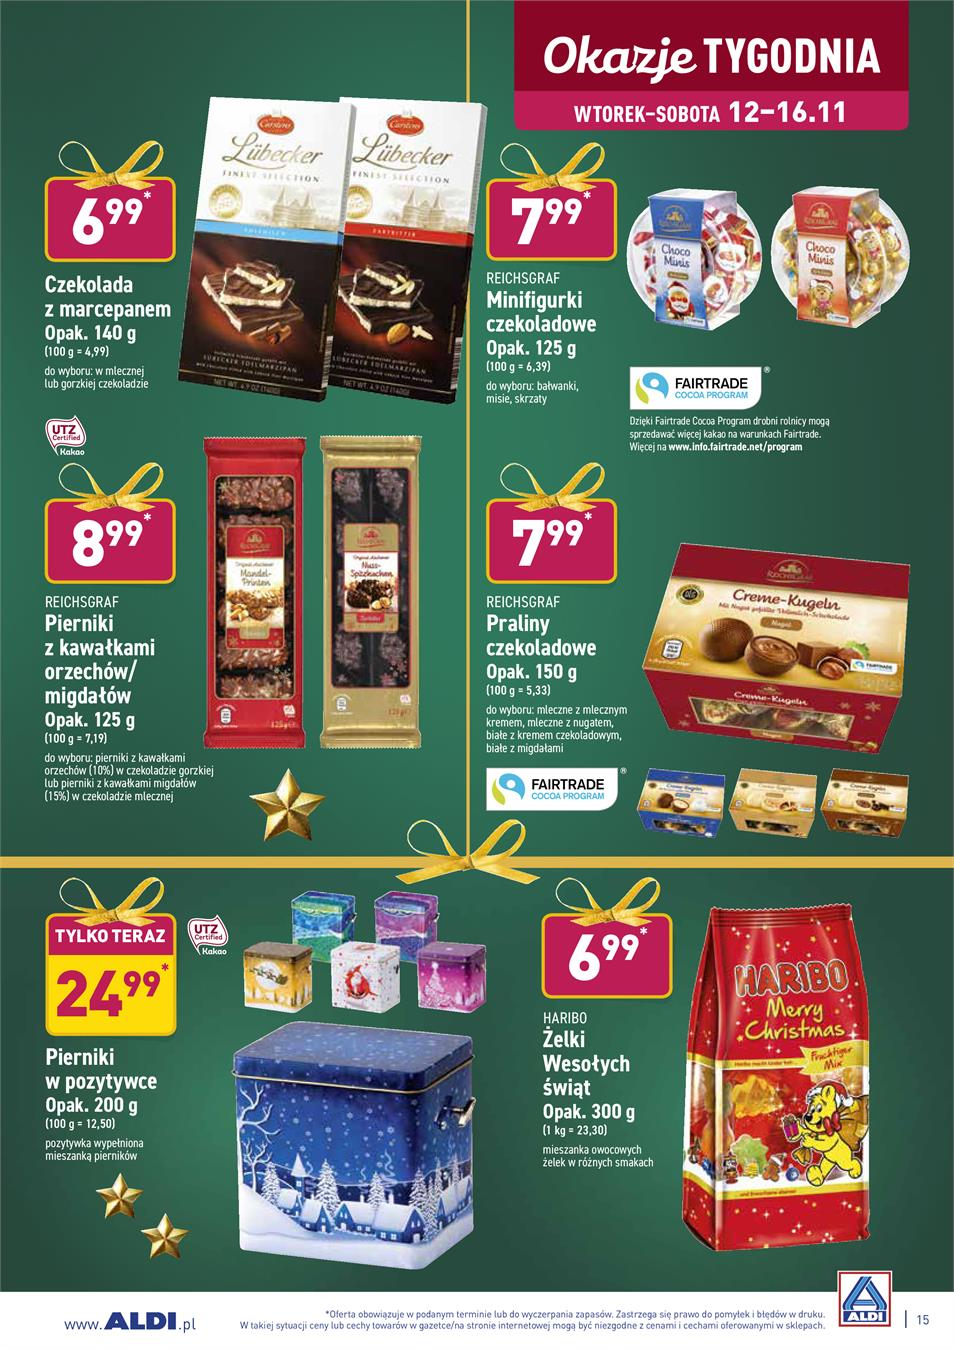 Gazetka ALDI SP Z O O  nr 15 od 2019-11-12 do 2019-11-16